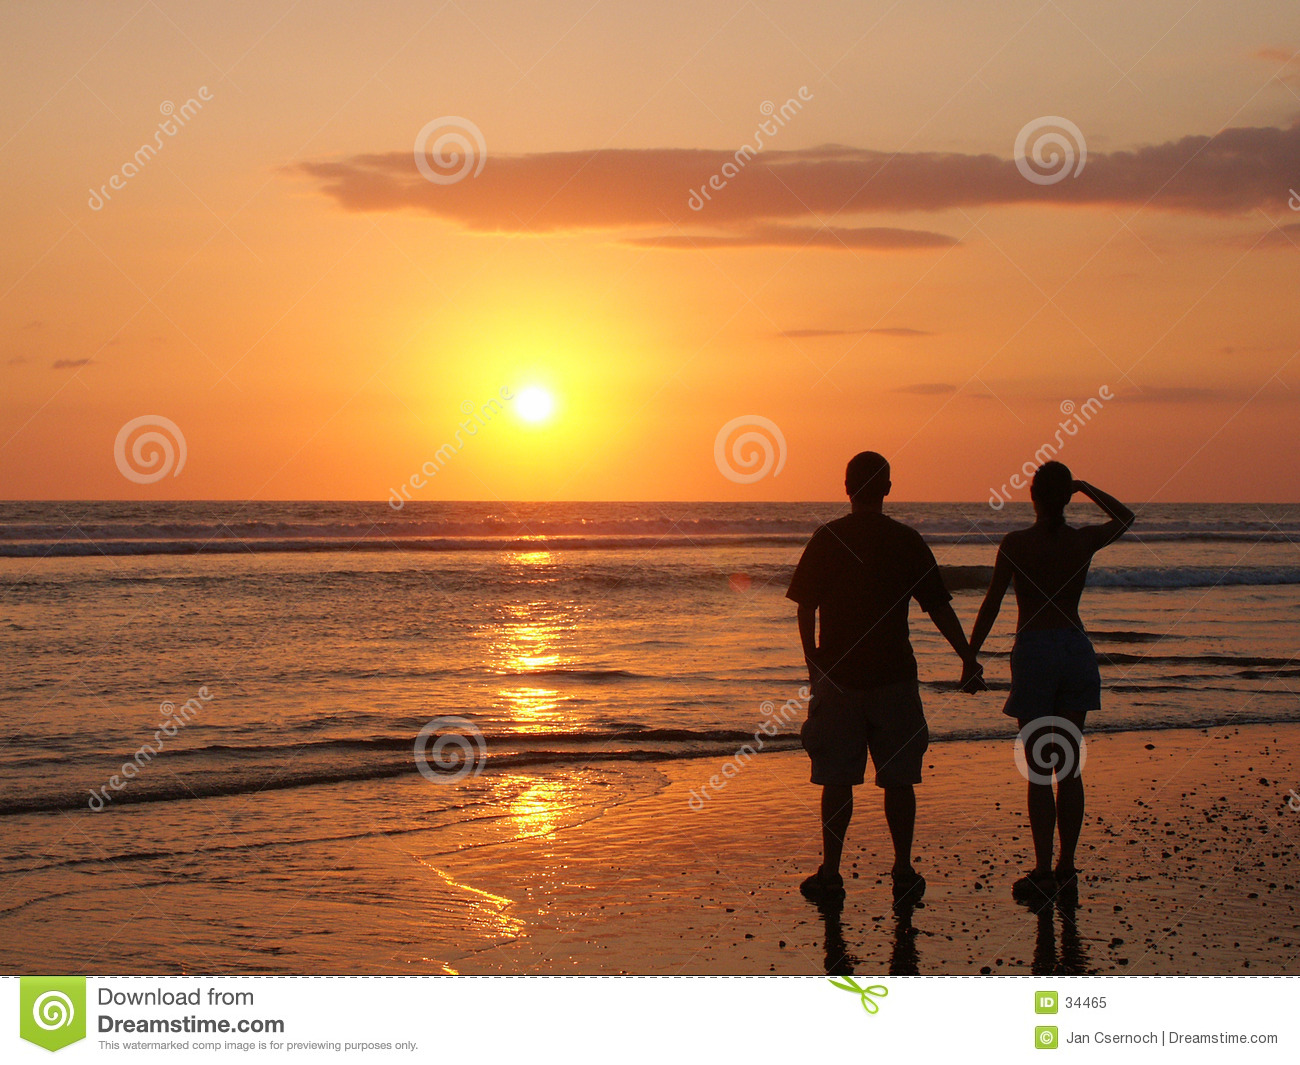 Couple watching the setting sun hand in hand